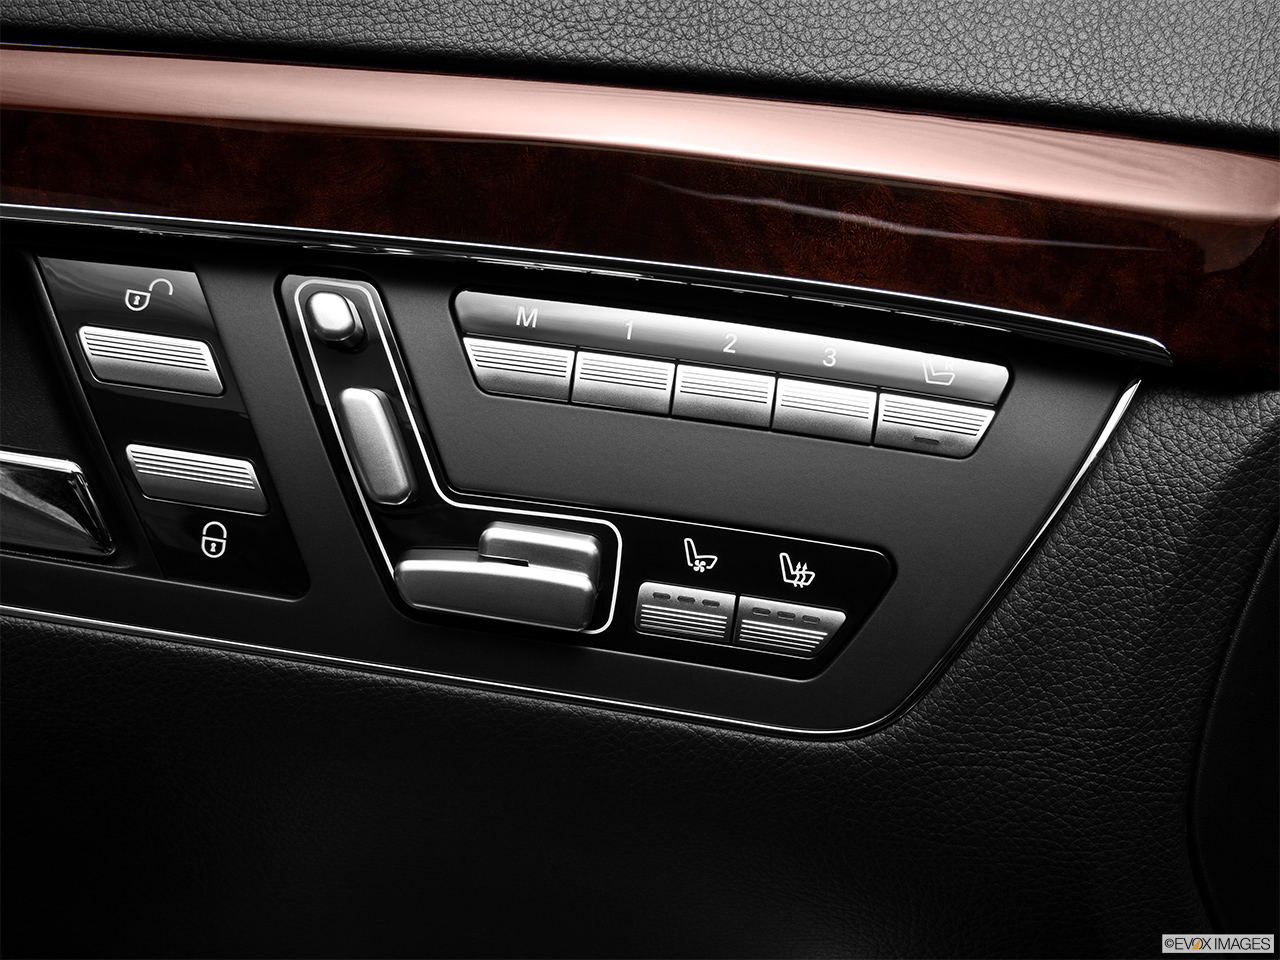 2012 Mercedes-Benz S-Class Hybrid S400 Seat Adjustment Controllers.